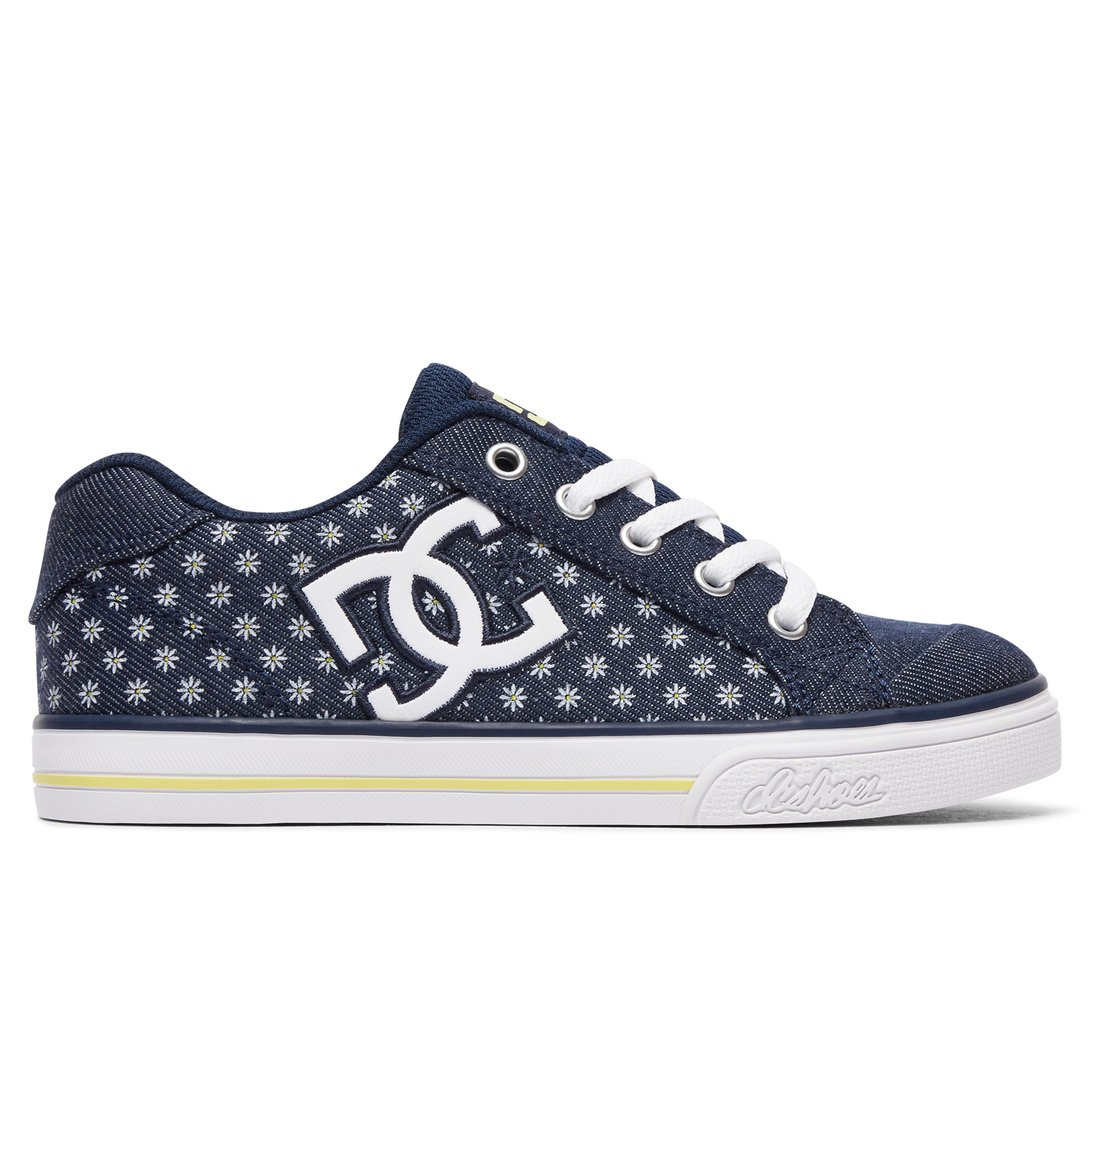 20ae15f3e71 0 Chelsea TX SP - Chaussures Vert ADGS300054 DC Shoes